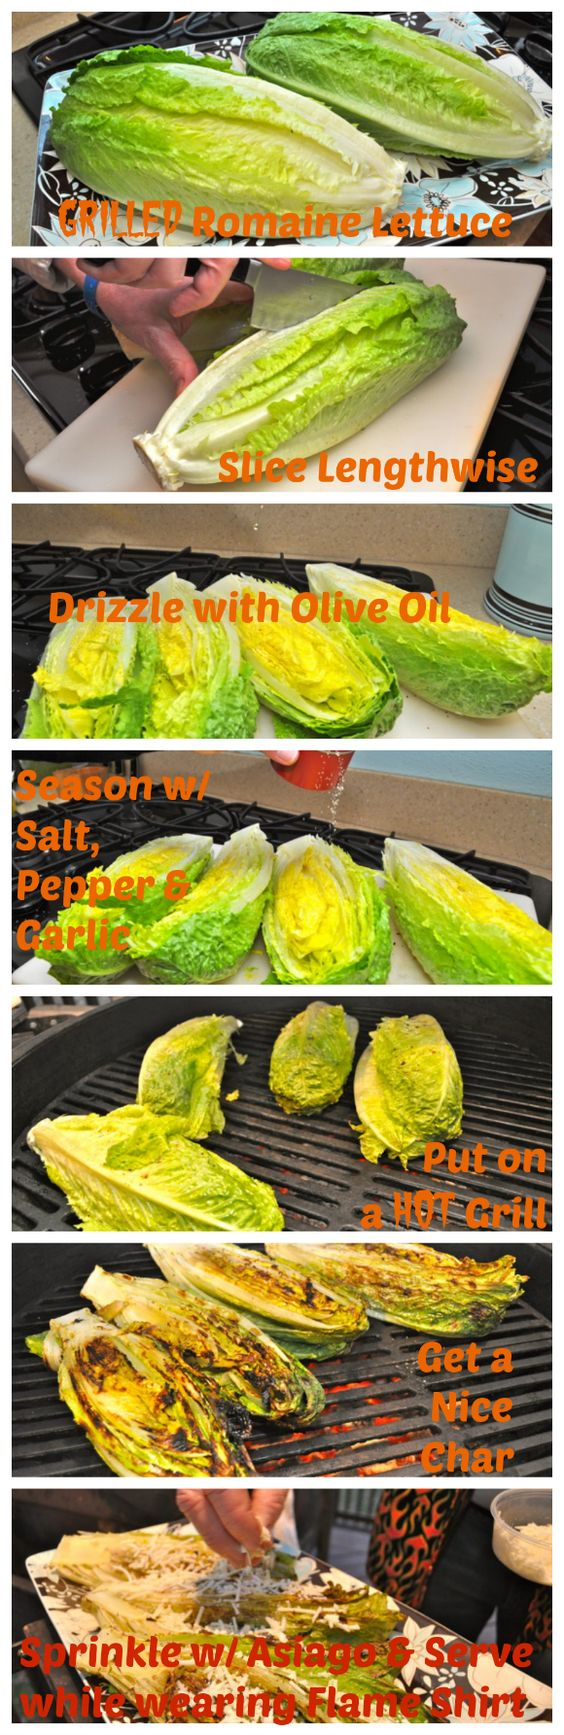 Have you ever grilled salad? Why the heck not? It takes it to a whole new level! Check the collage for step by step, foolproof instructions.